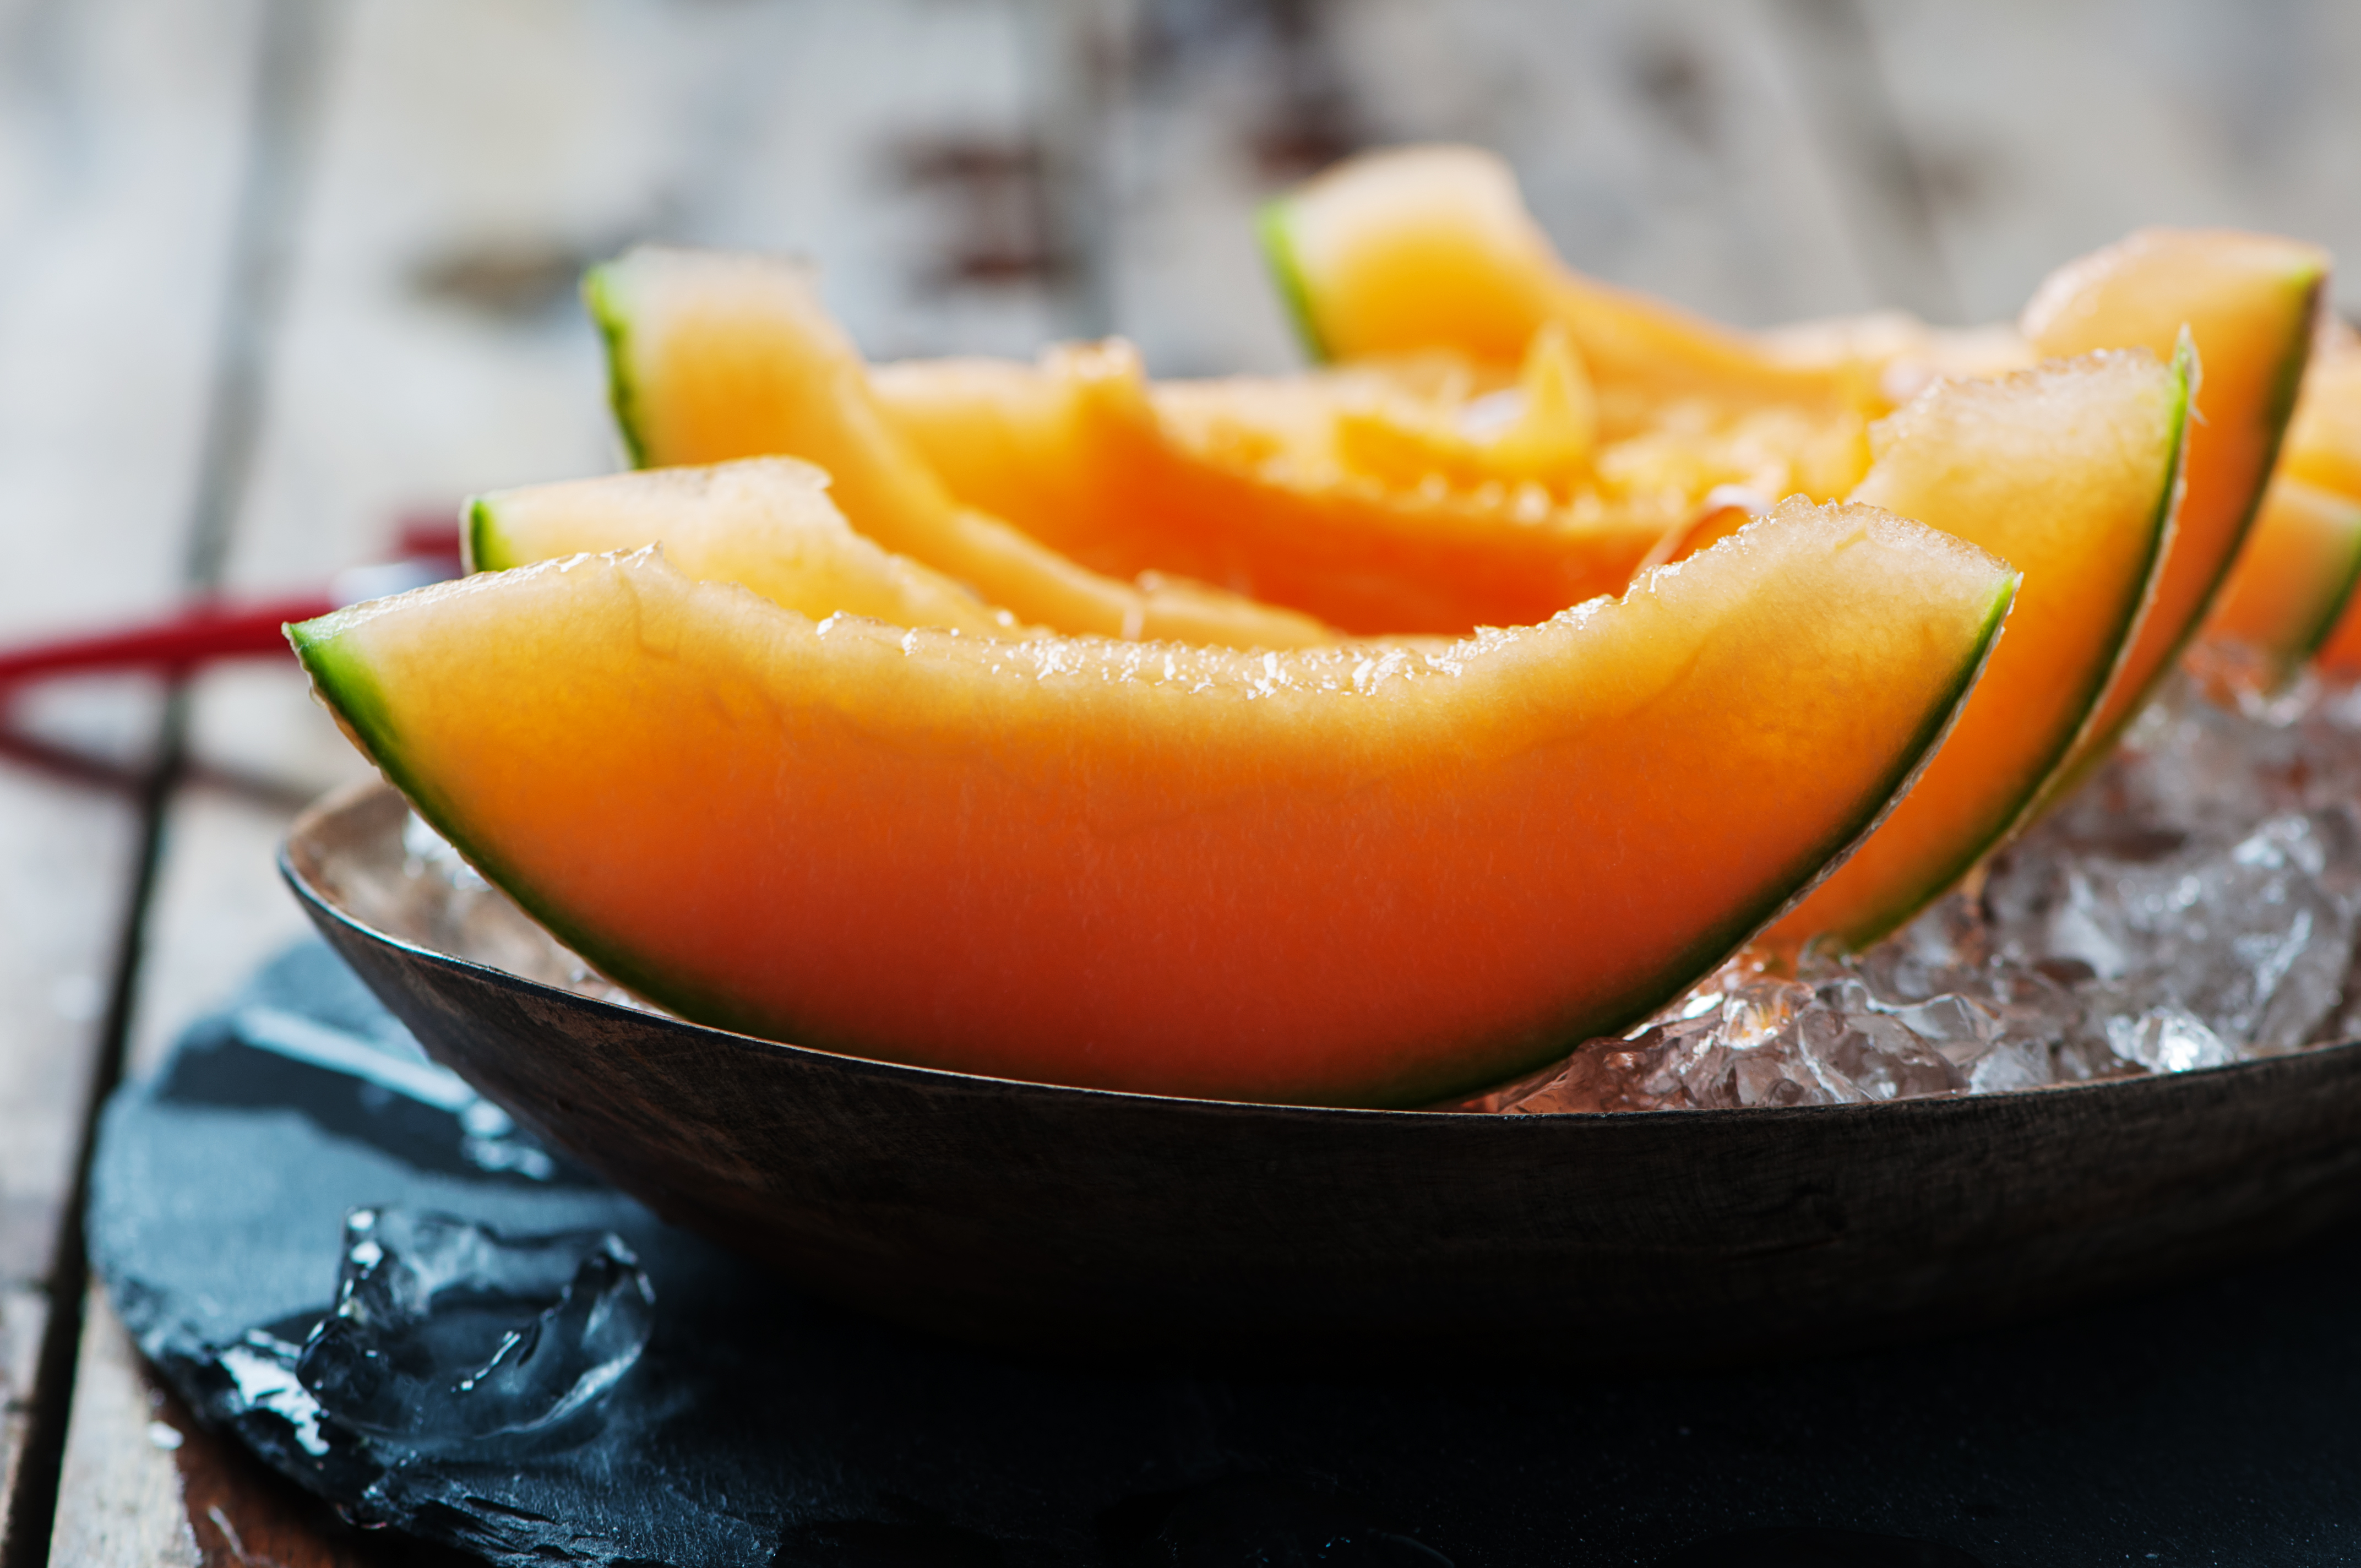 Fresh melon with ice on the wooden table, selective focus